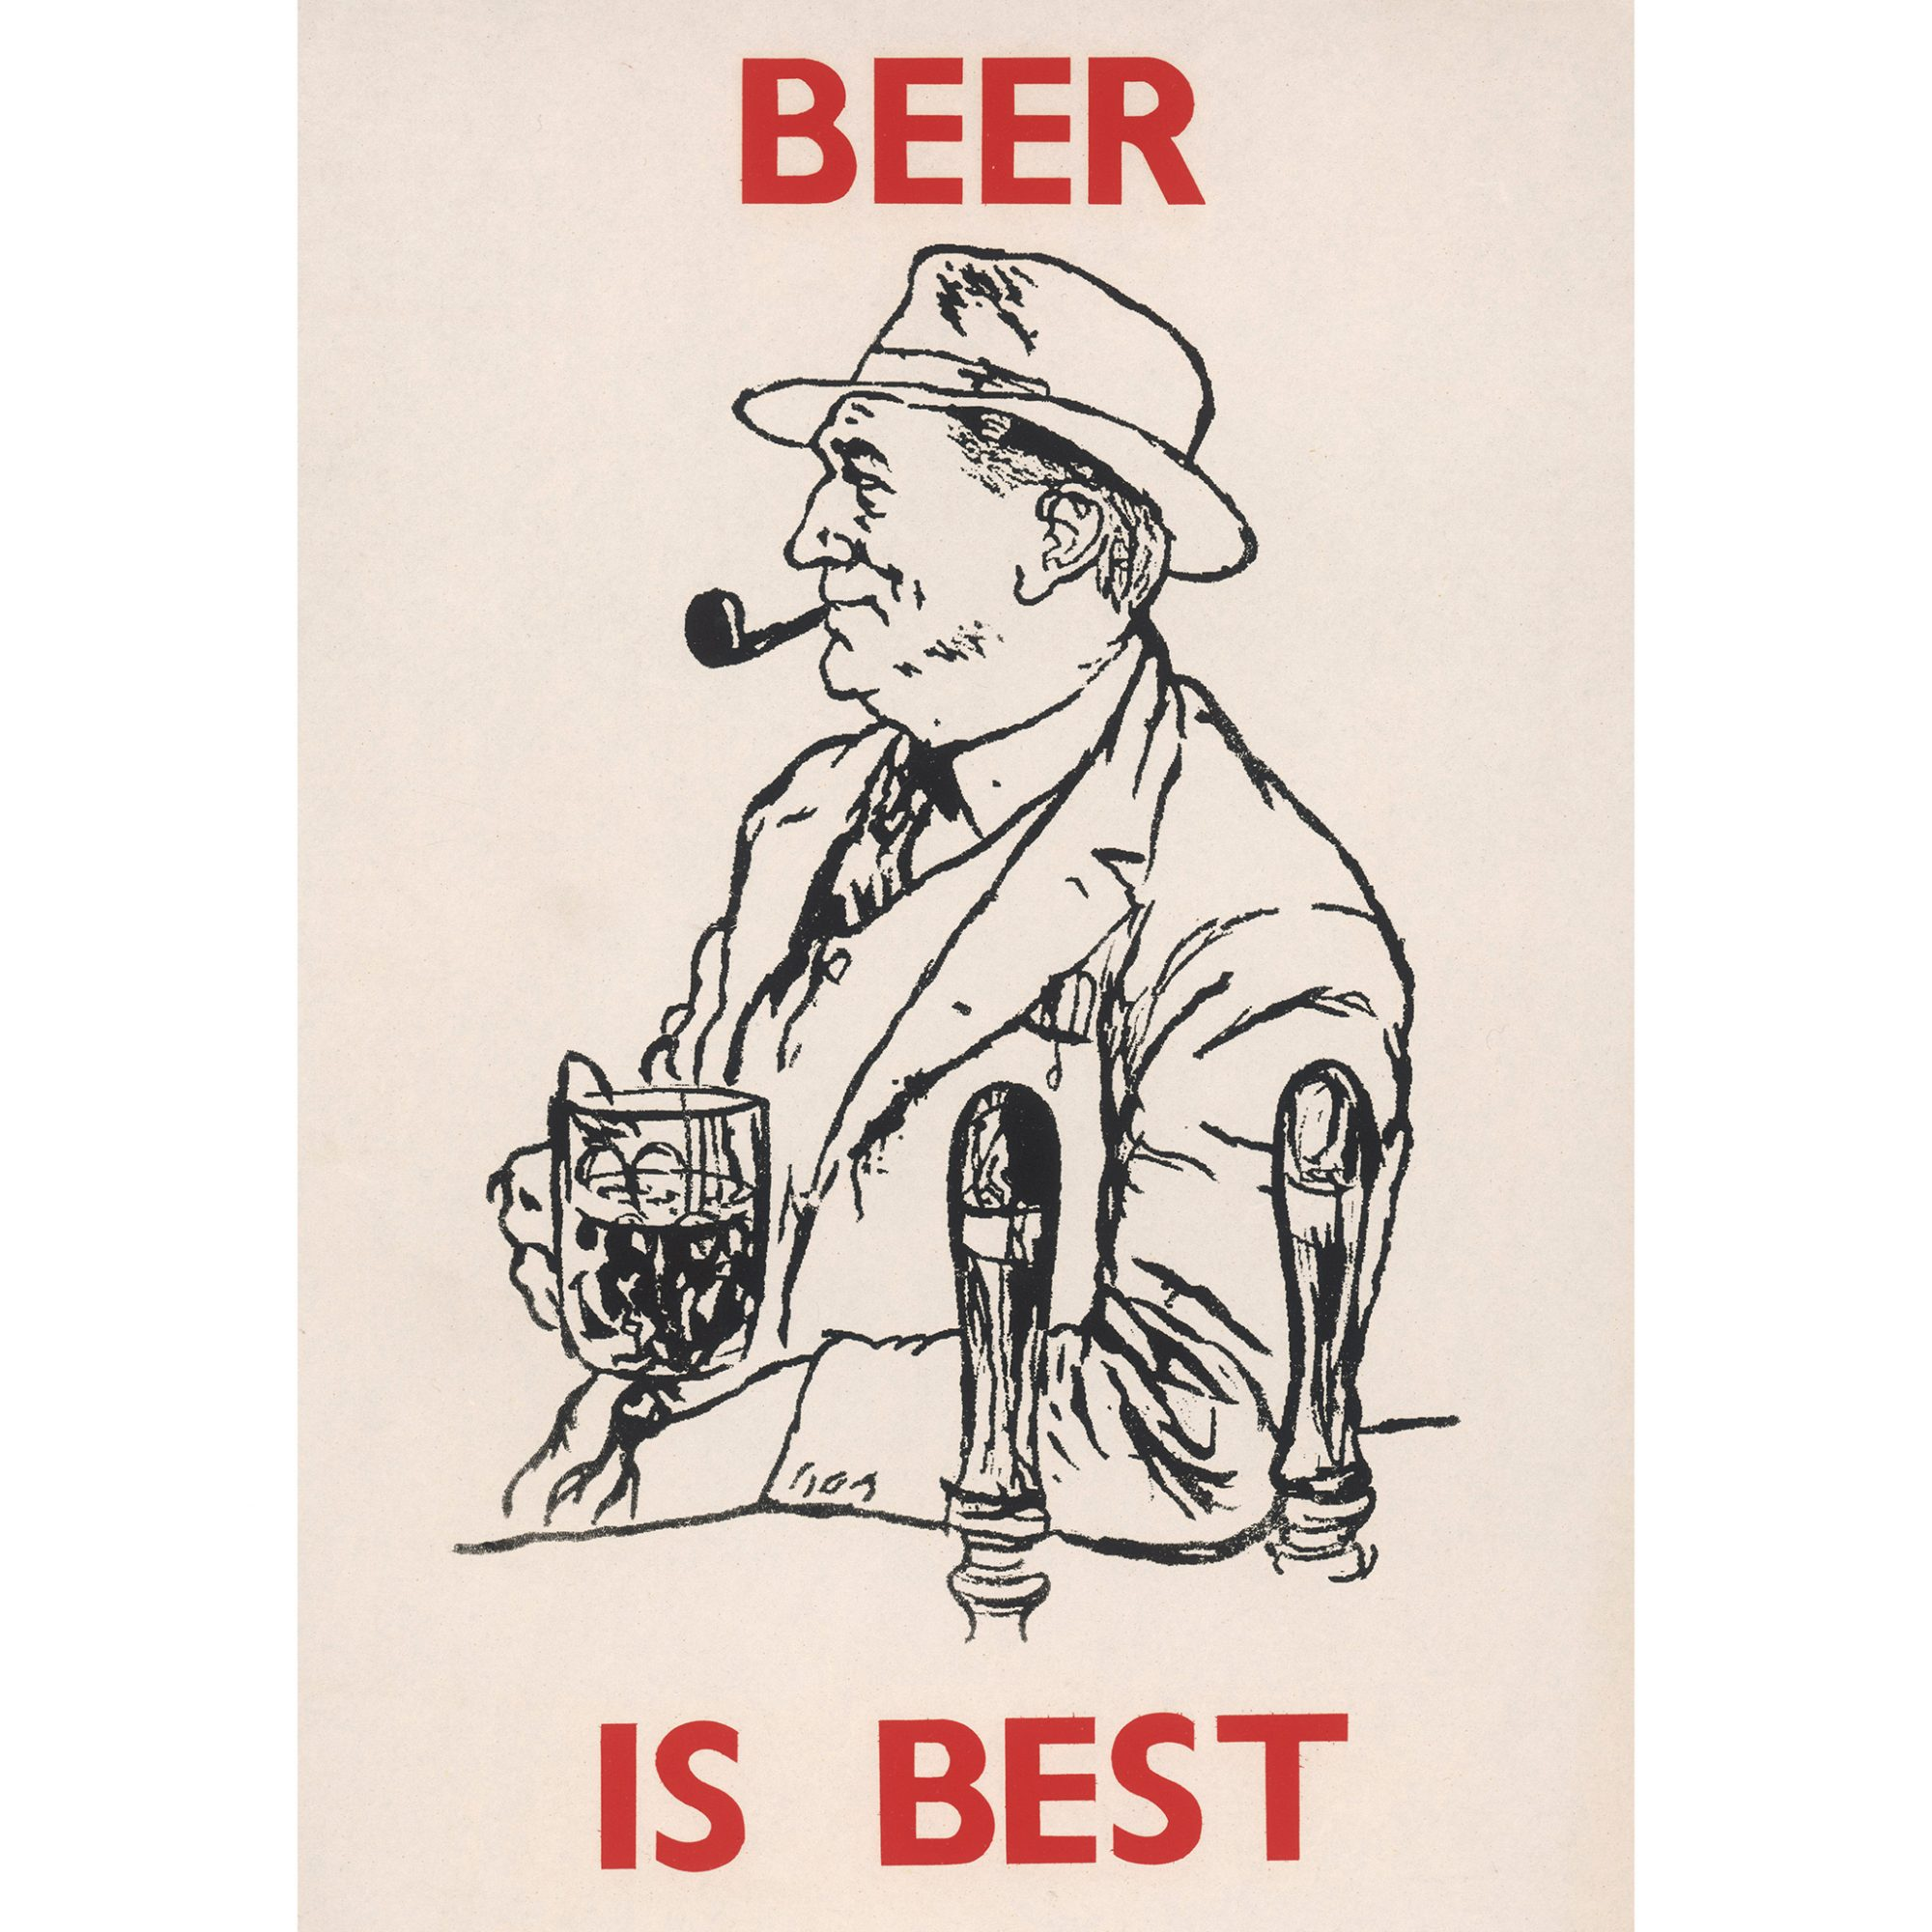 FWX BEER GEEK OR BEER SNOB